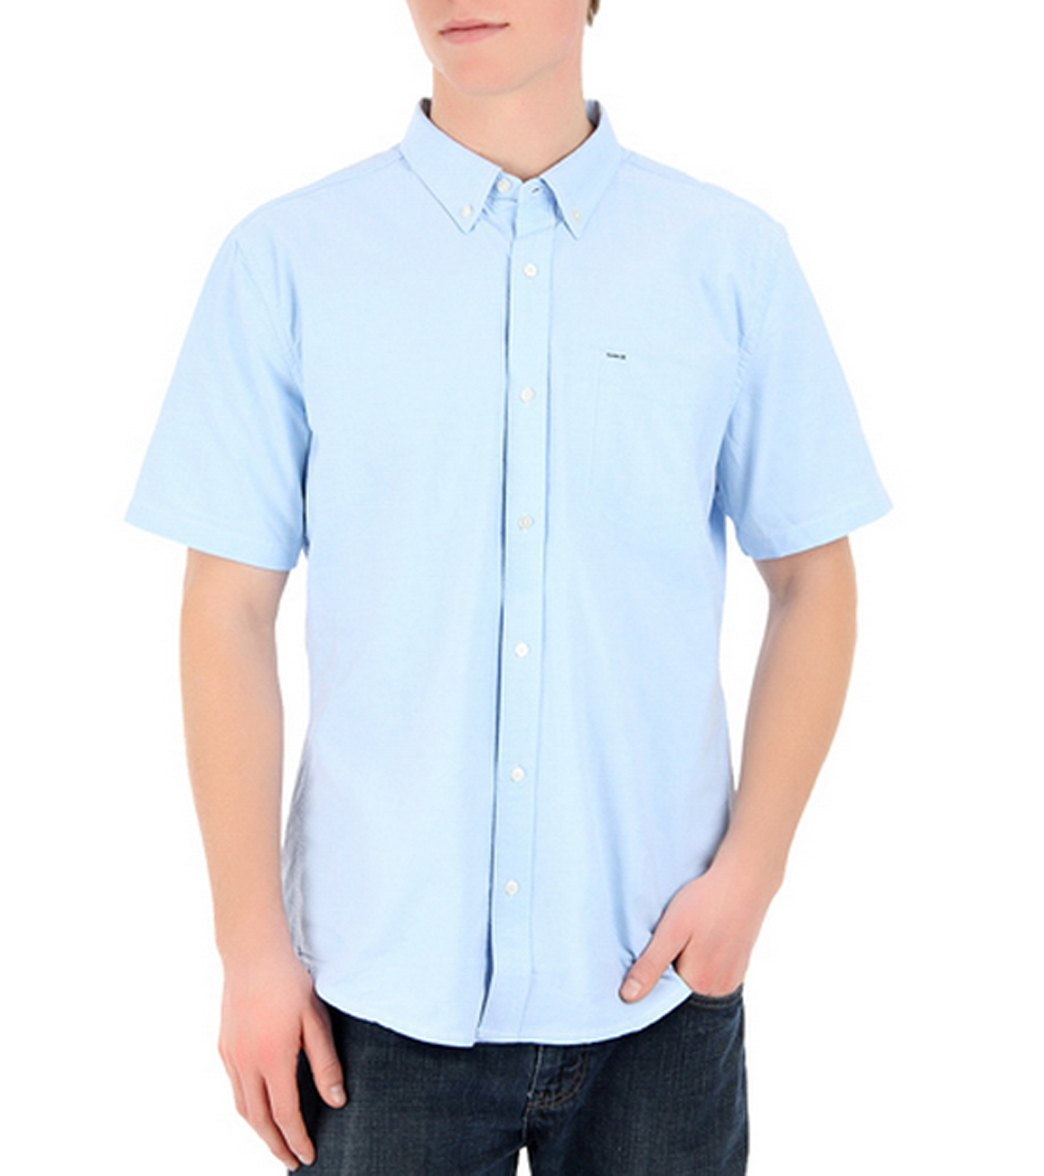 Hurley Mens Ace Oxford Ss Shirt At Swimoutlet Free Shipping